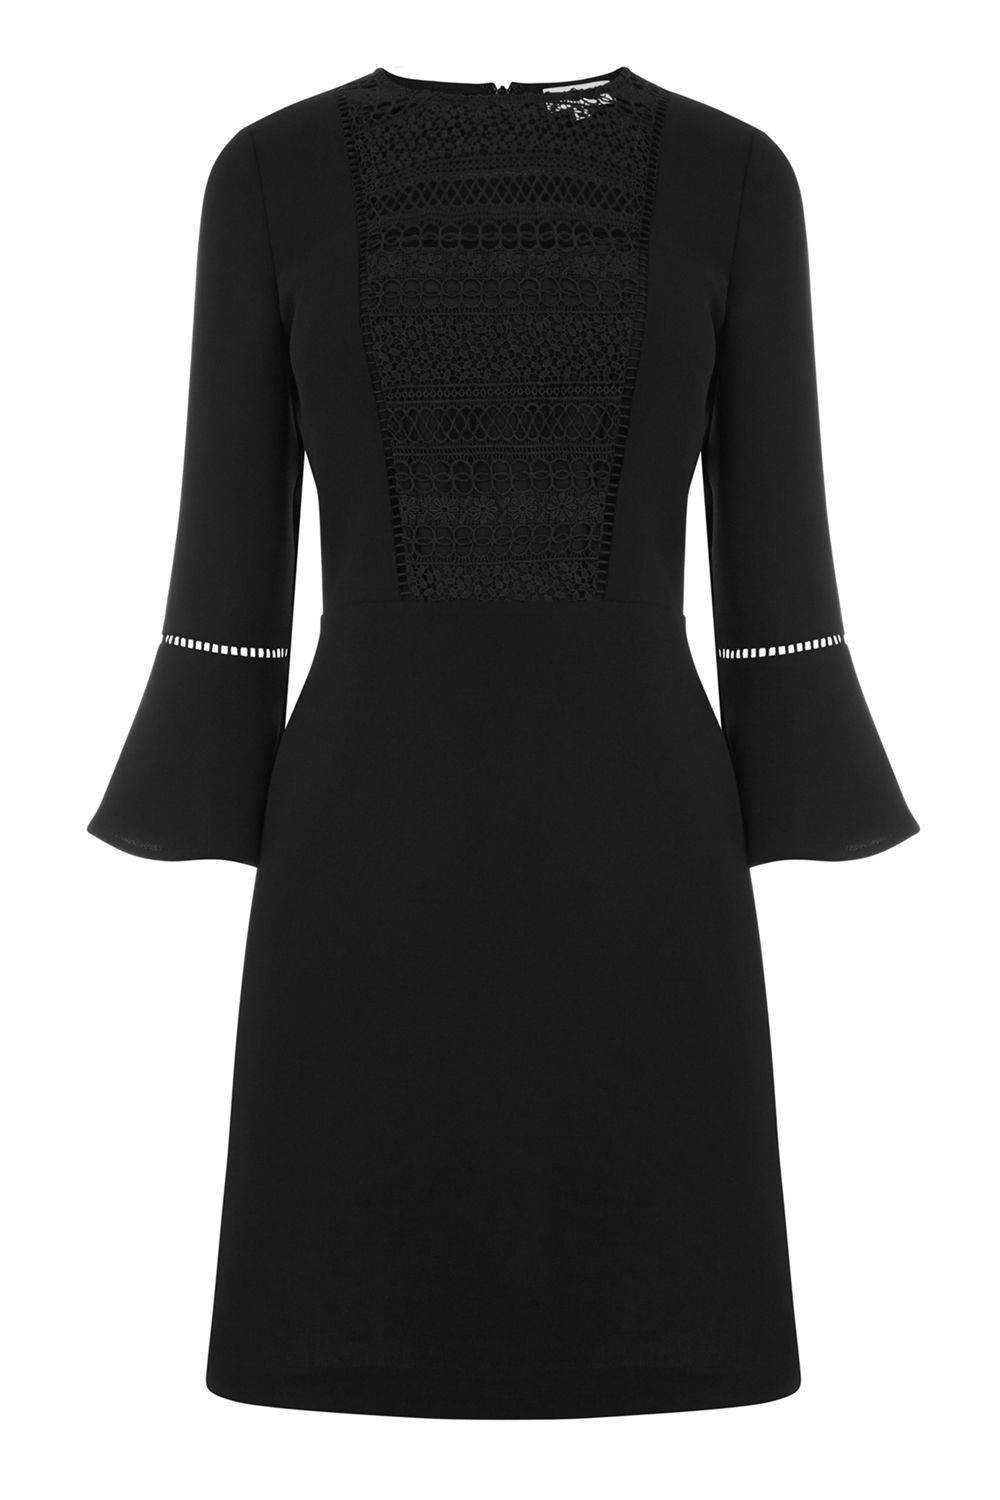 Warehouse Lace Front Fluted Sleeve Dress, Black